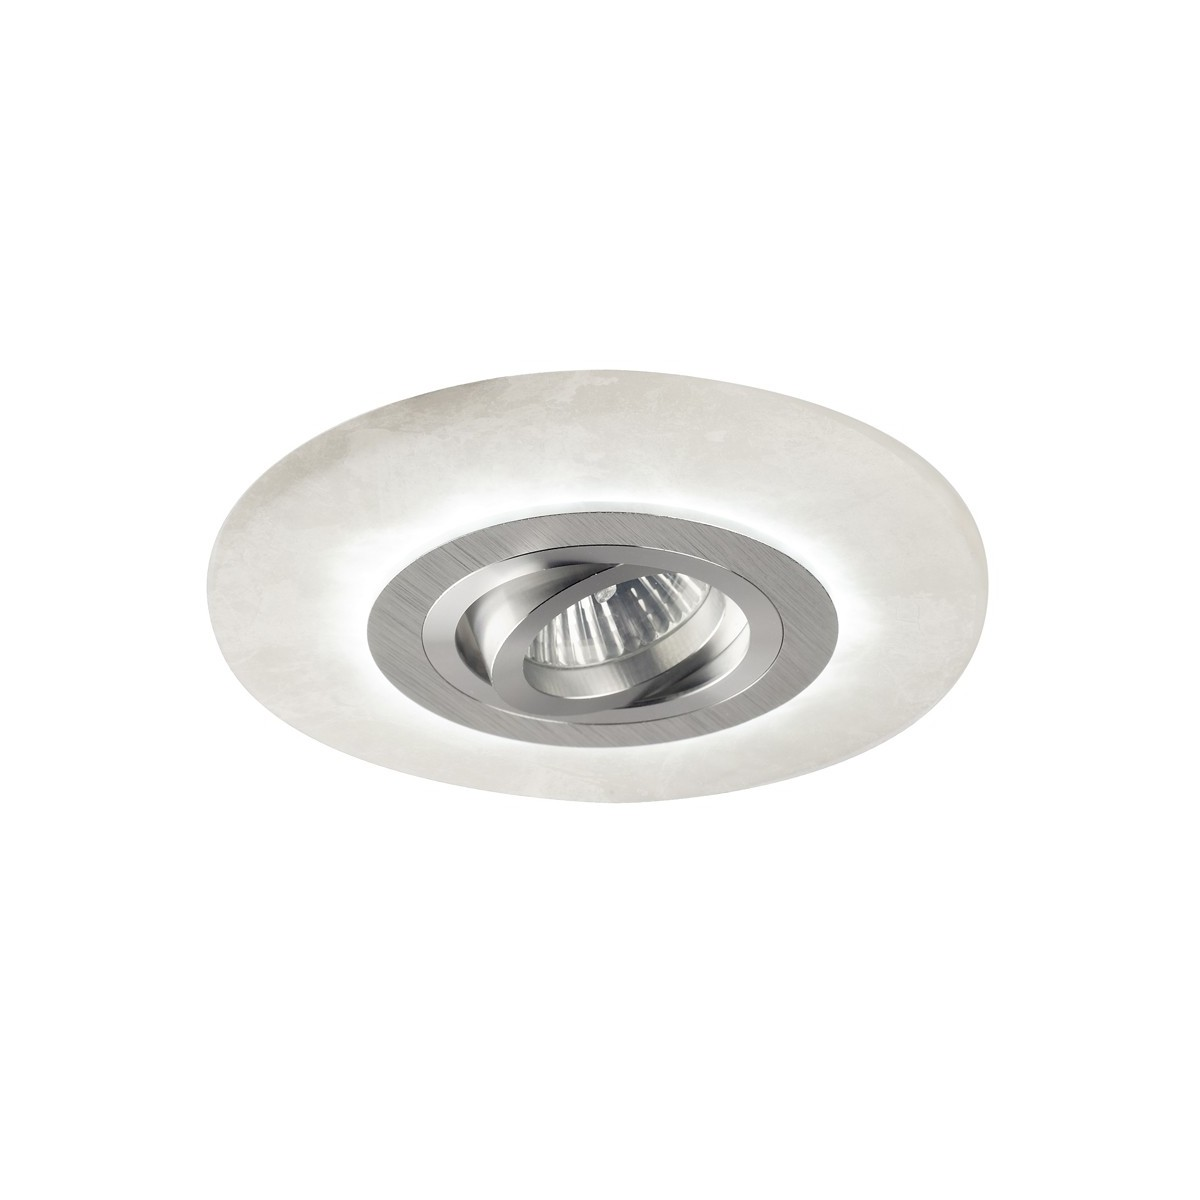 Empotrable led Alabaster aluminio (2,4W)